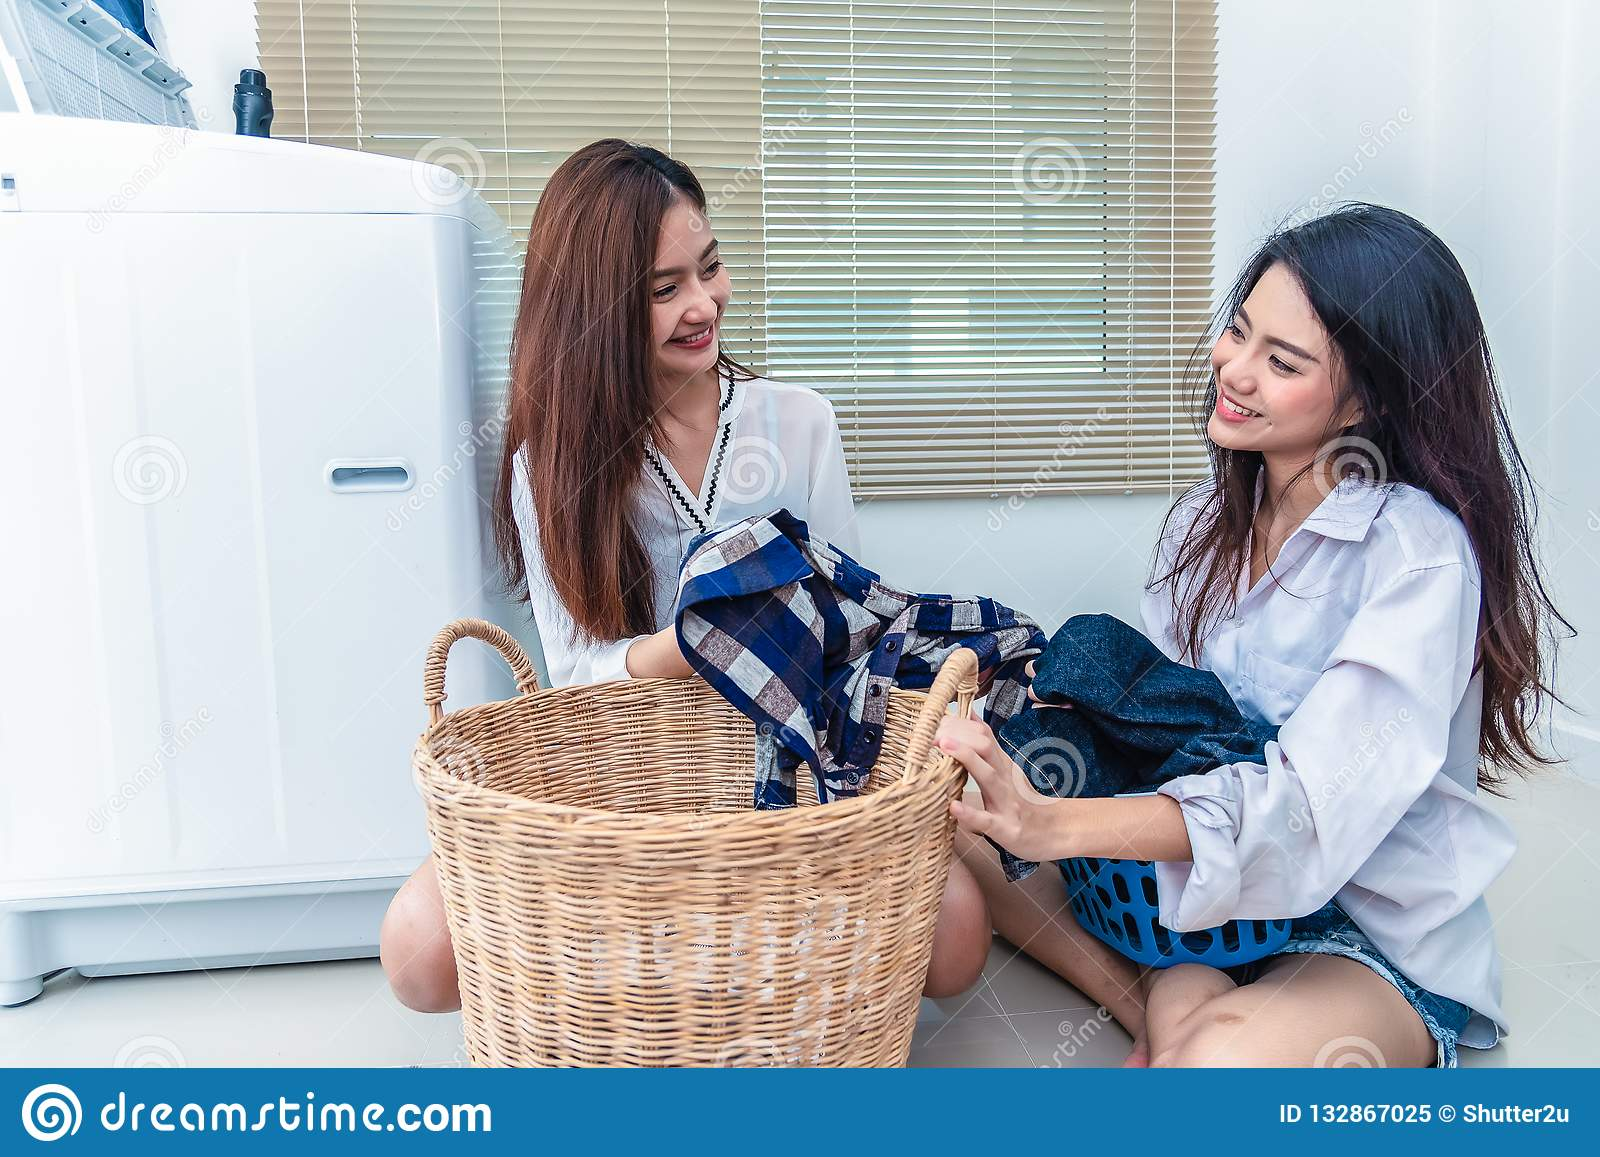 Lesbians in laundry room